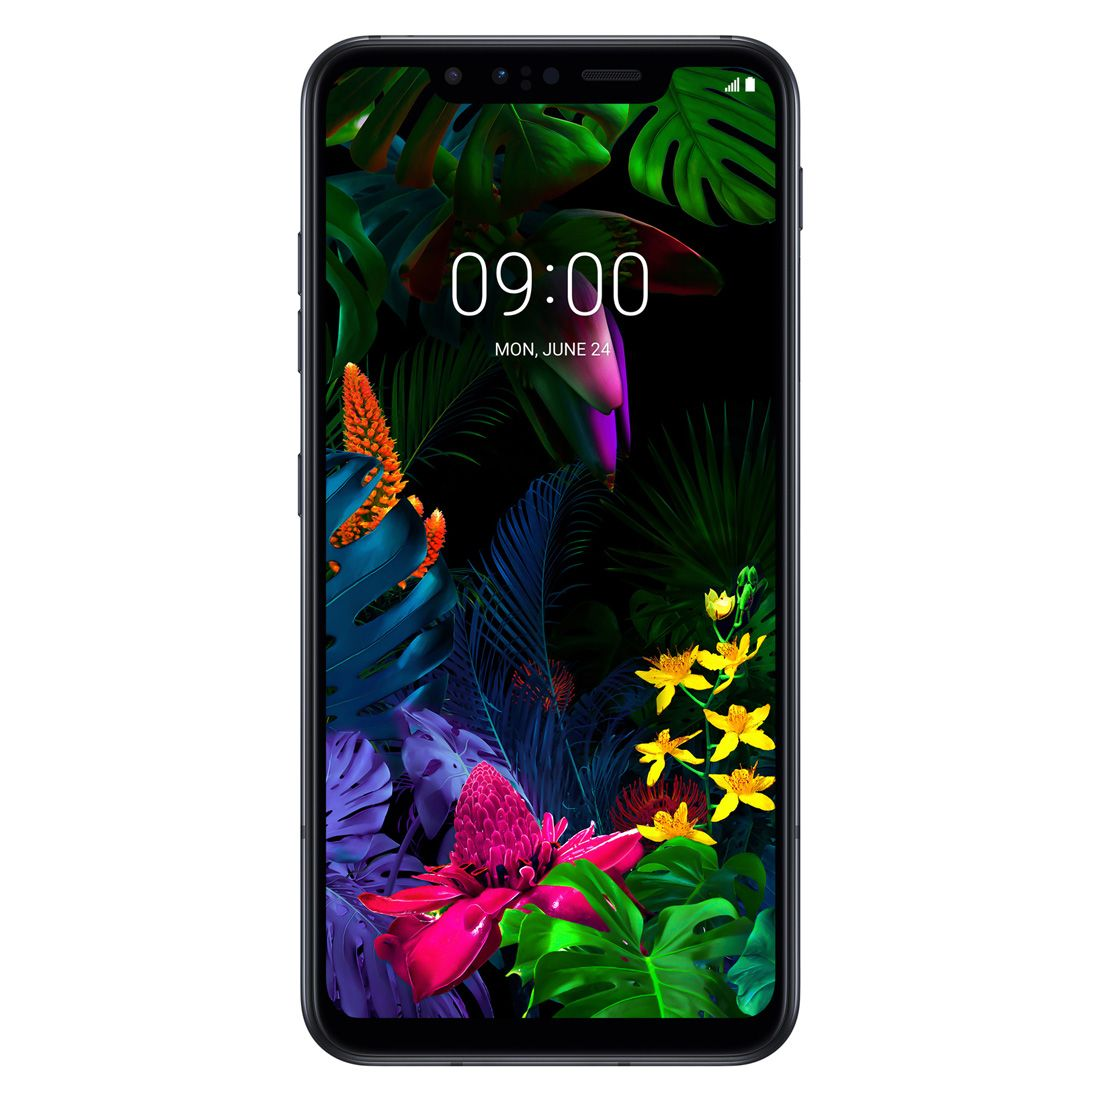 LG G8s ThinQ (Dual Sim 4G/4G, 128GB/6GB) - Mirror Black